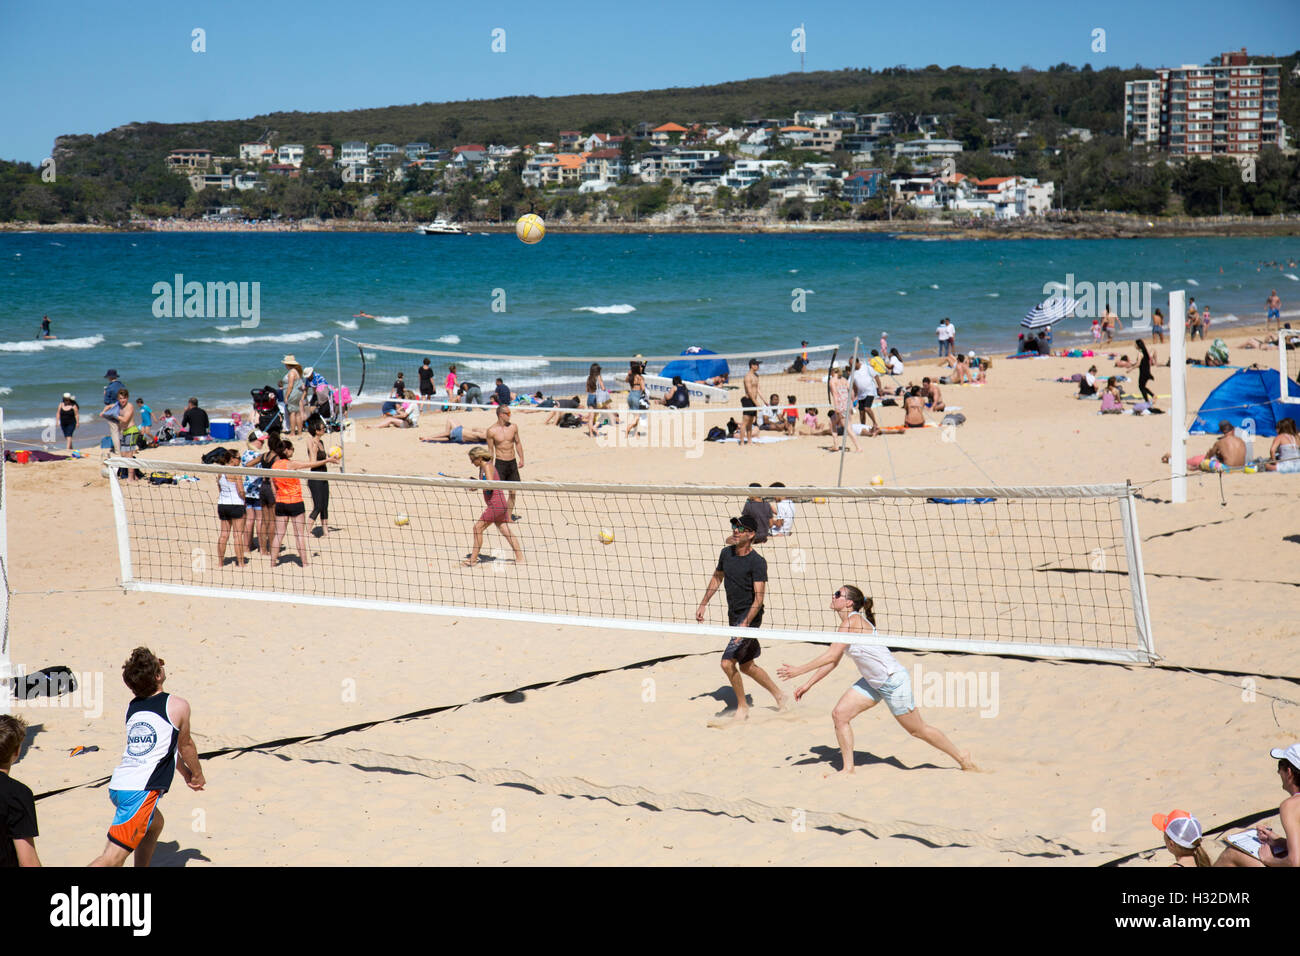 Manly beach, Sydney Australia, sunbathing and tanning along with beach volleyball matches,Sydney,Australia - Stock Image